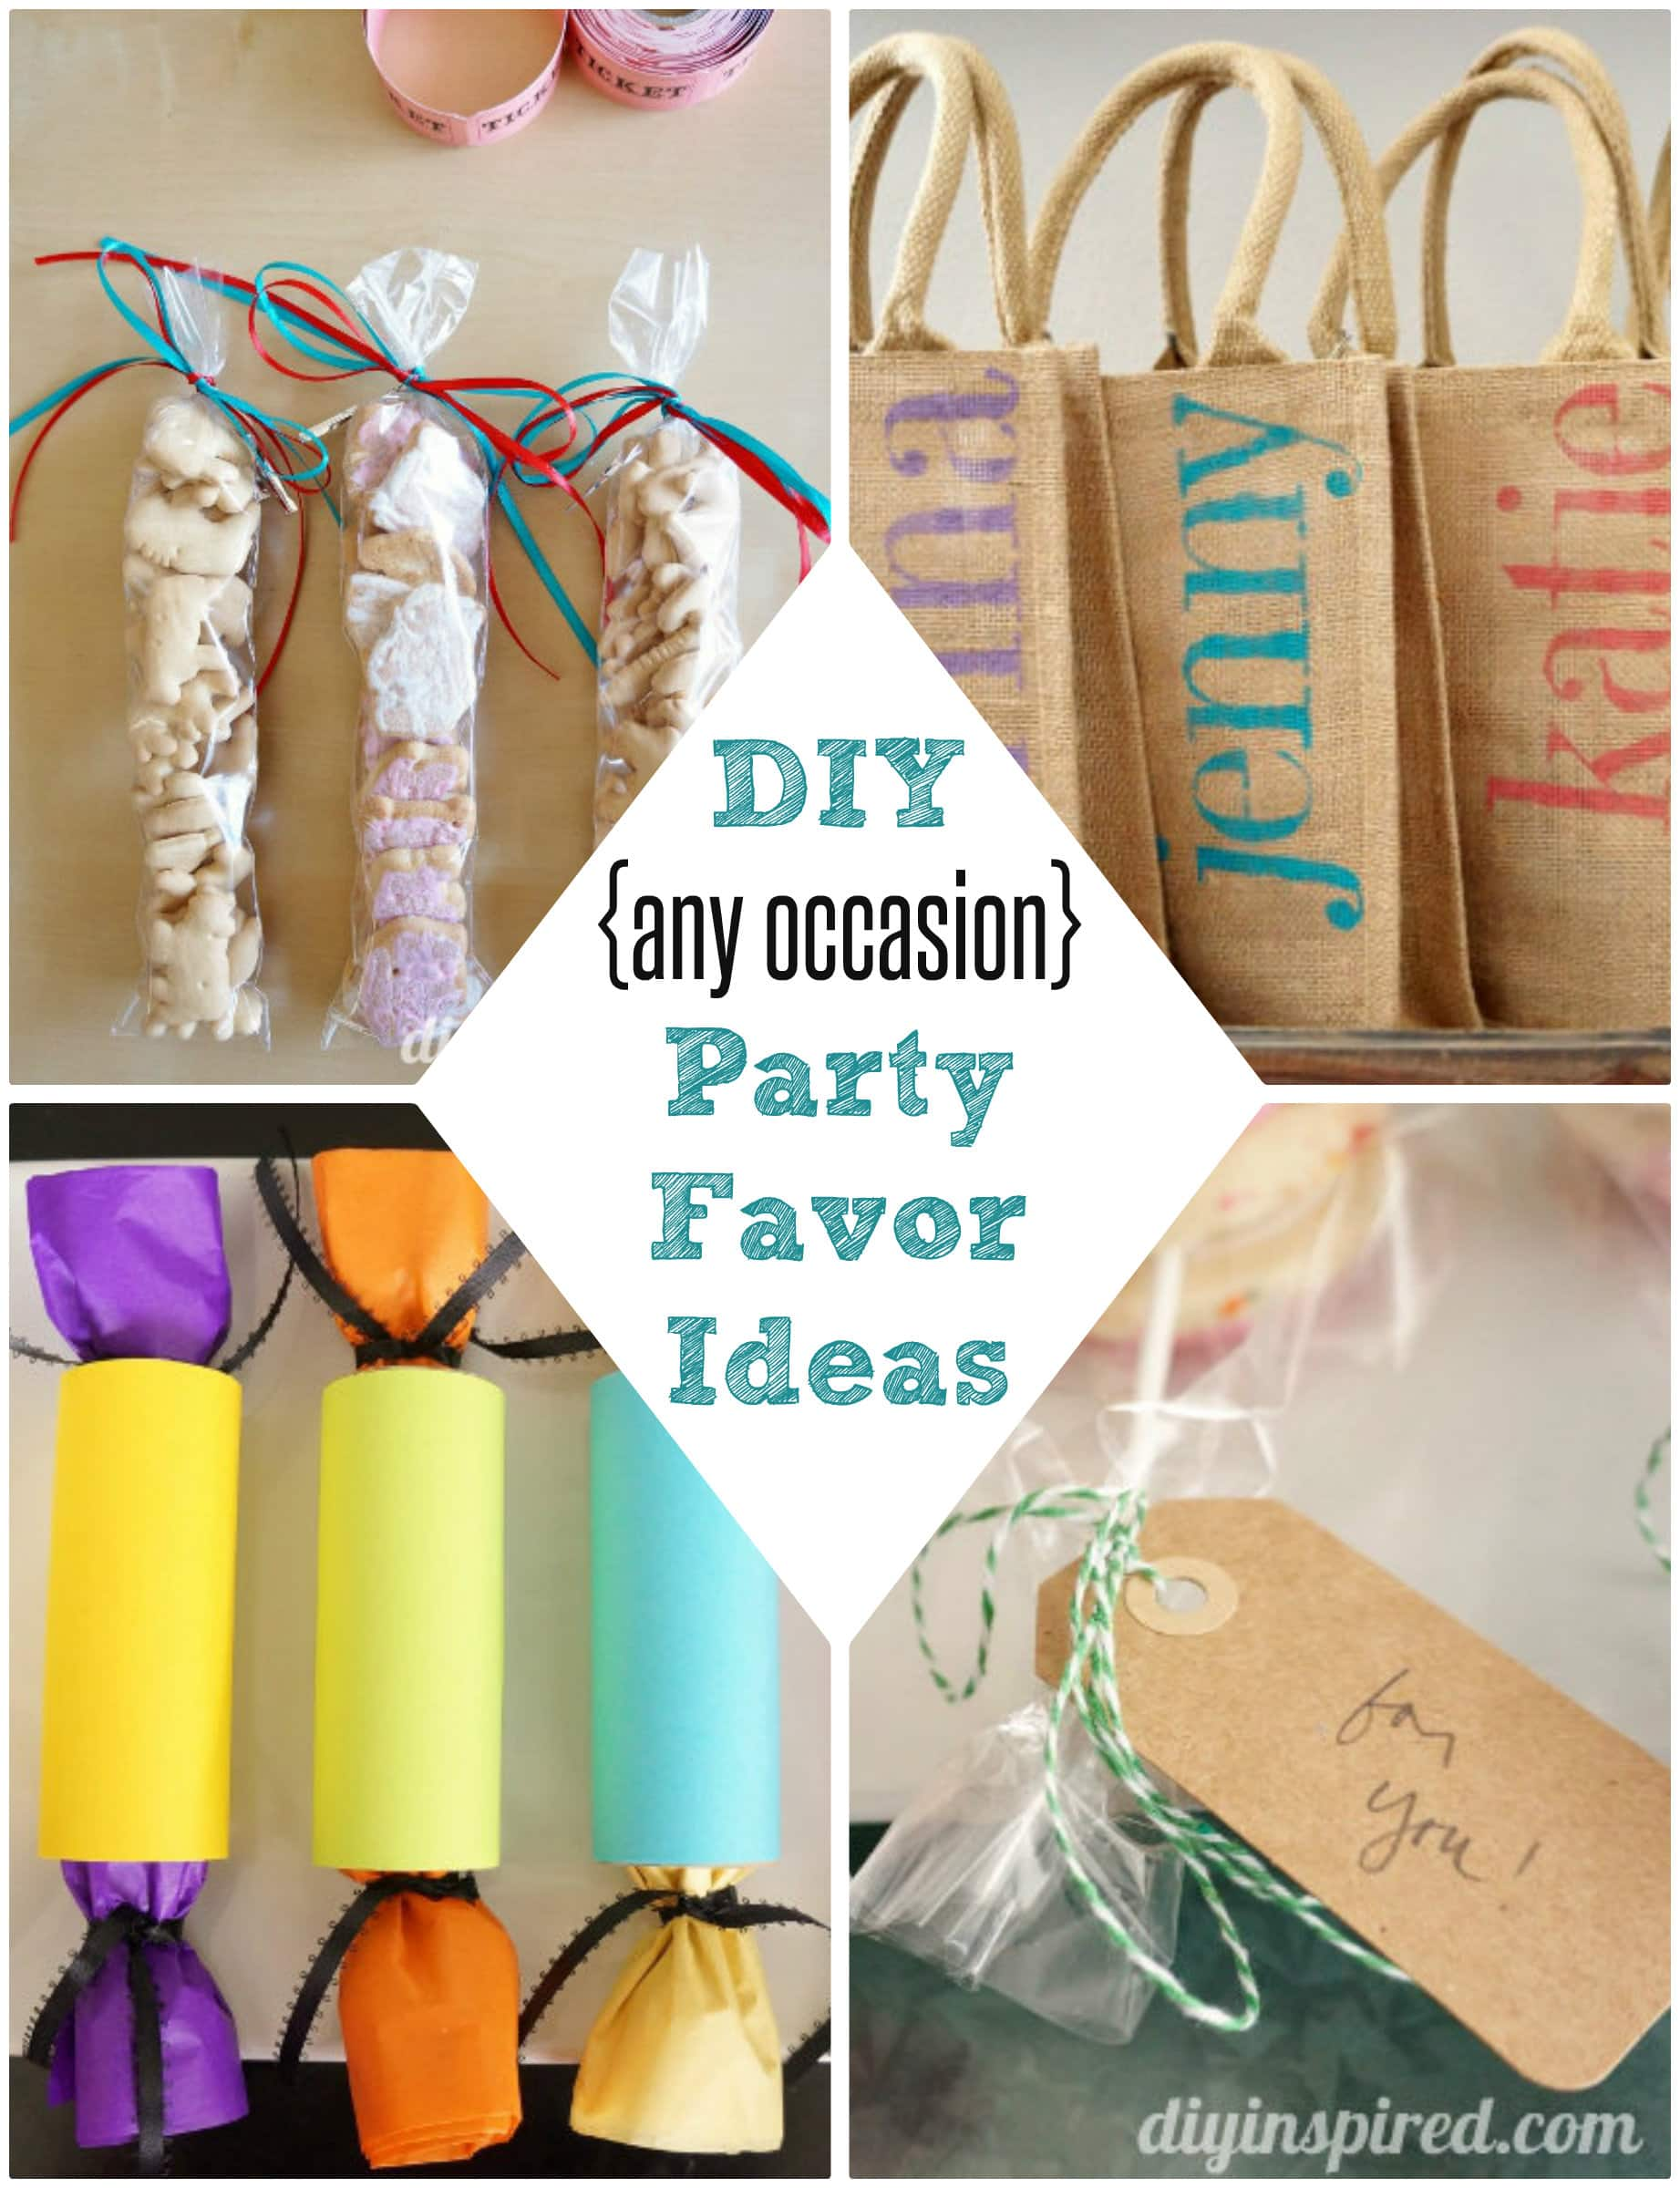 DIY Party Favor Ideas